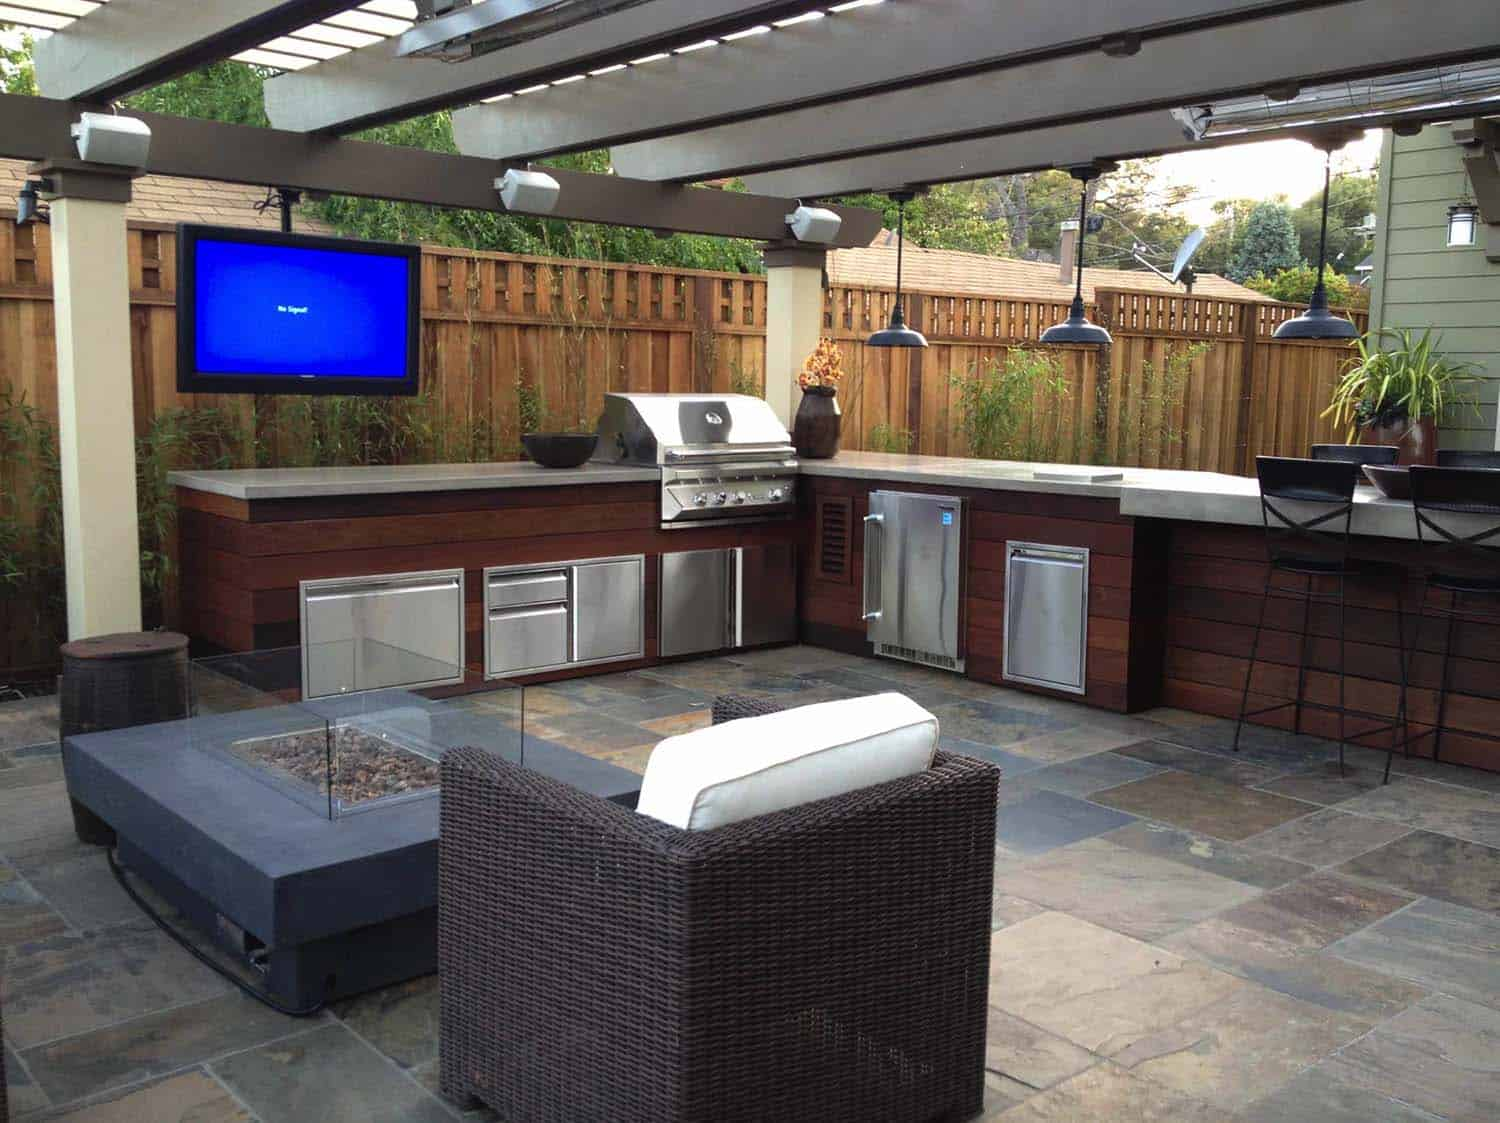 20 spectacular outdoor kitchens with bars for entertaining for Easy outdoor kitchen designs